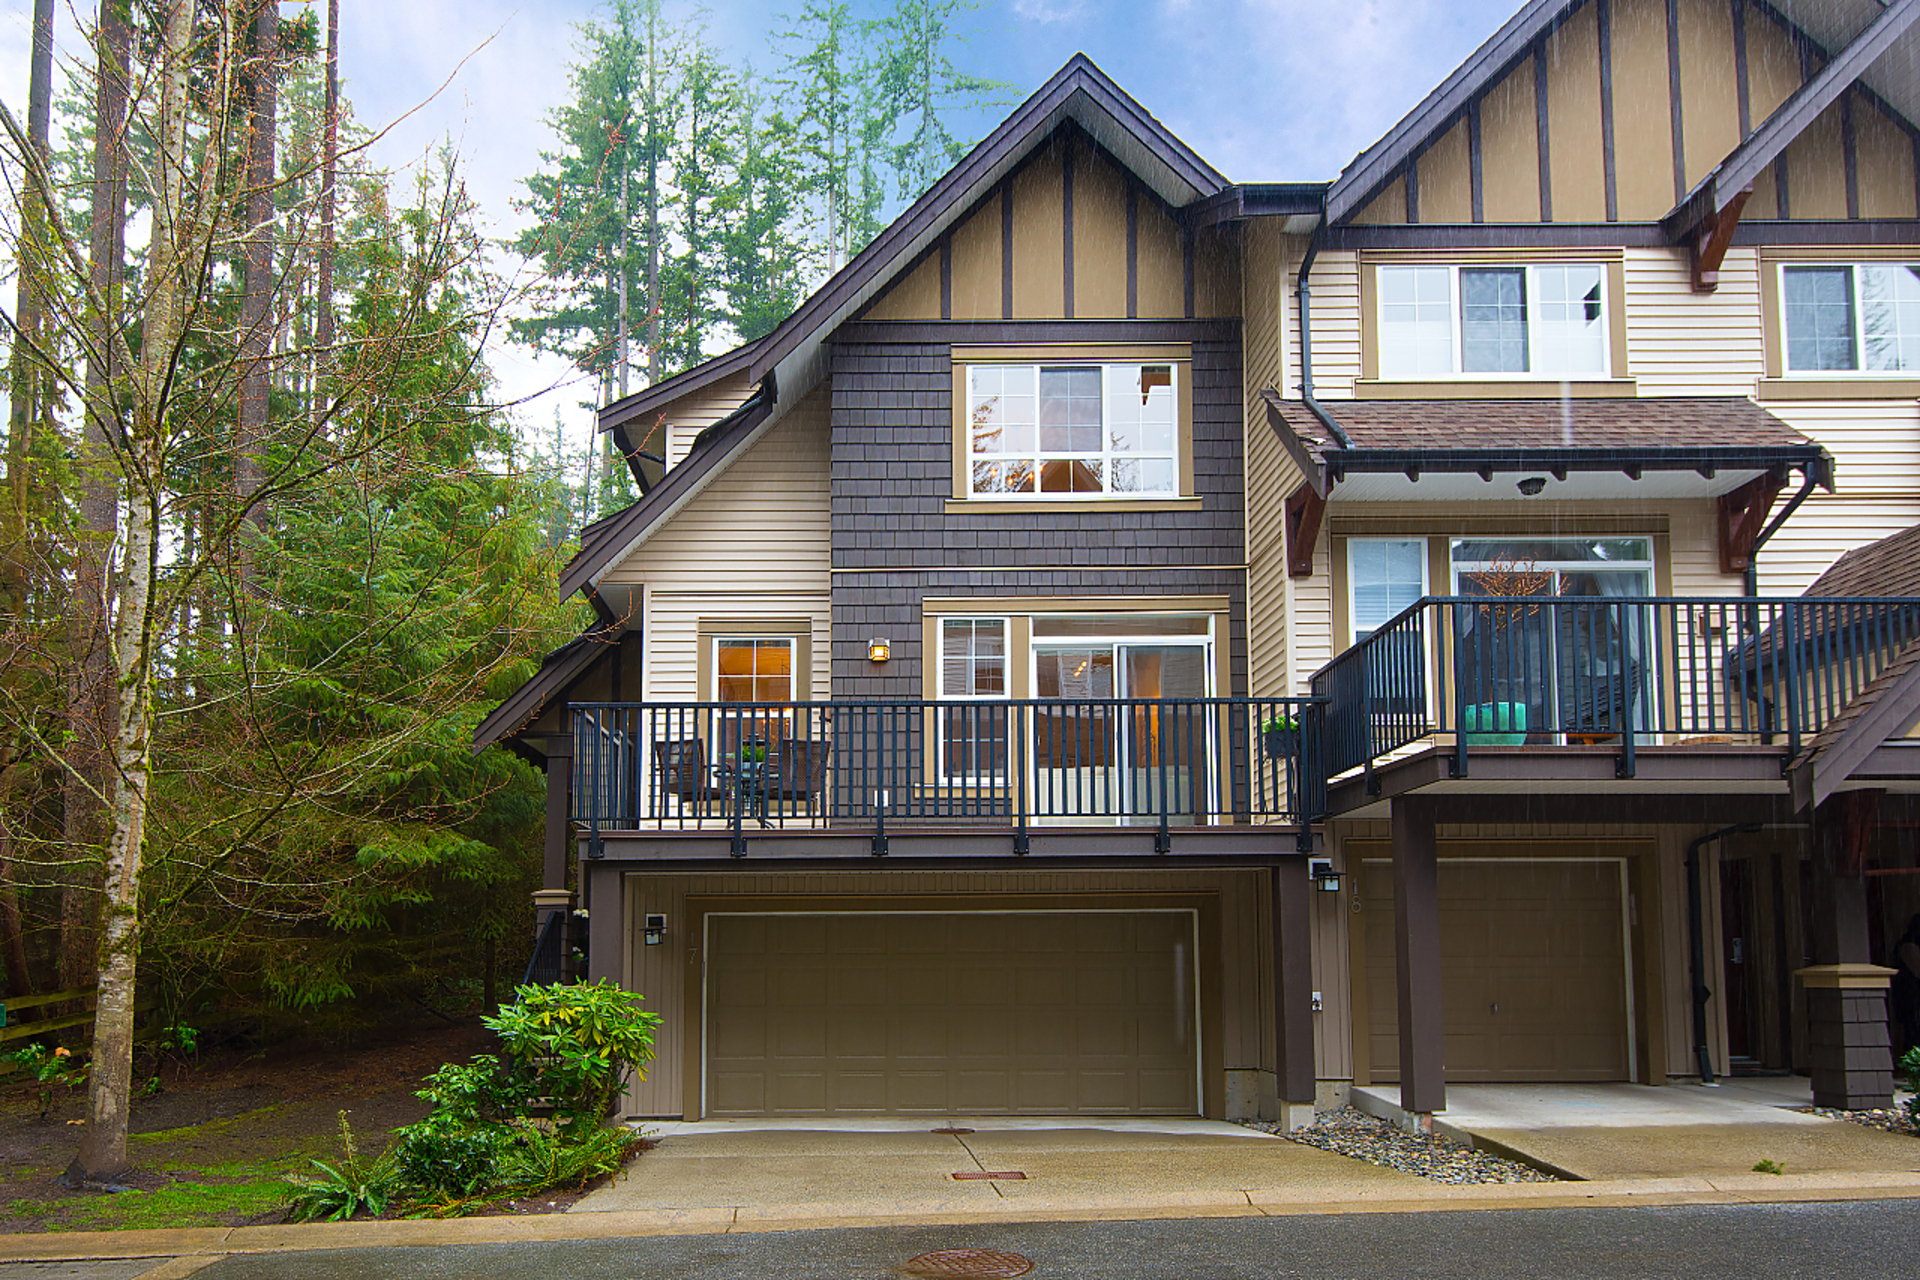 002 at 17 - 2200 Panorama Drive, Heritage Woods PM, Port Moody